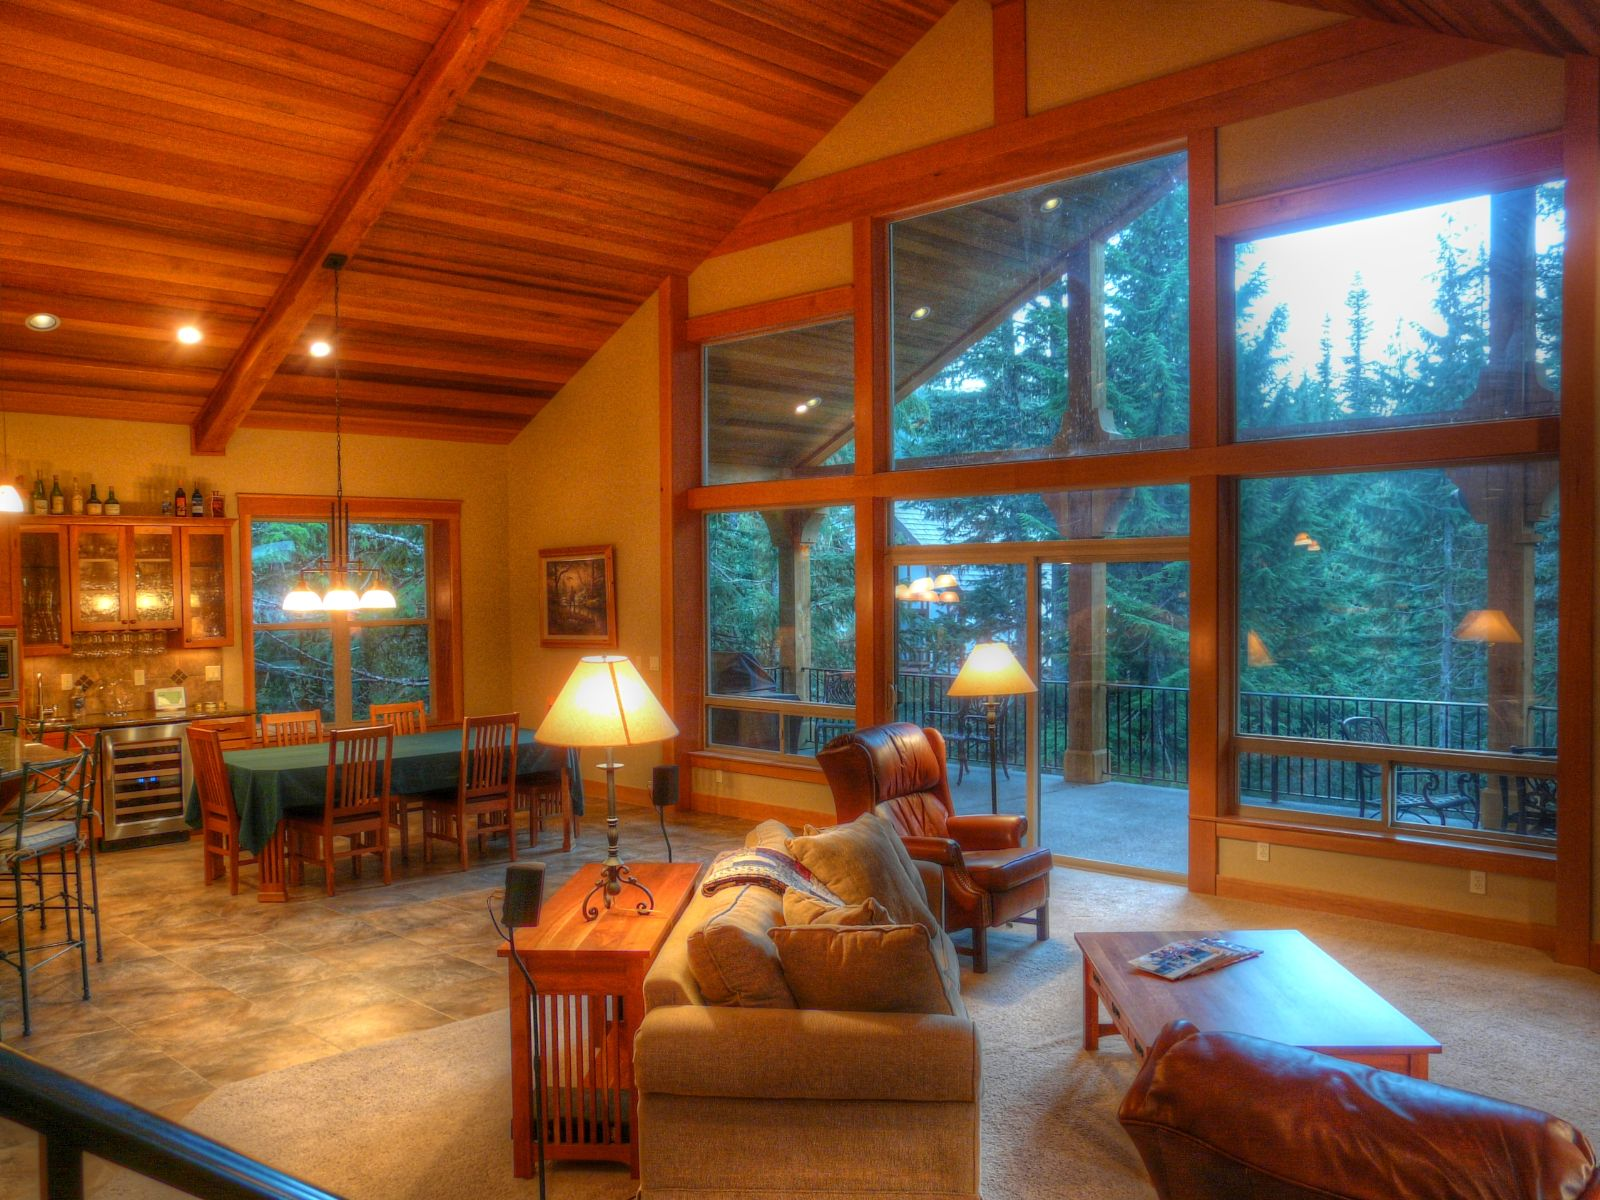 All cedar ceilings with vaults, a wall of windows, and more